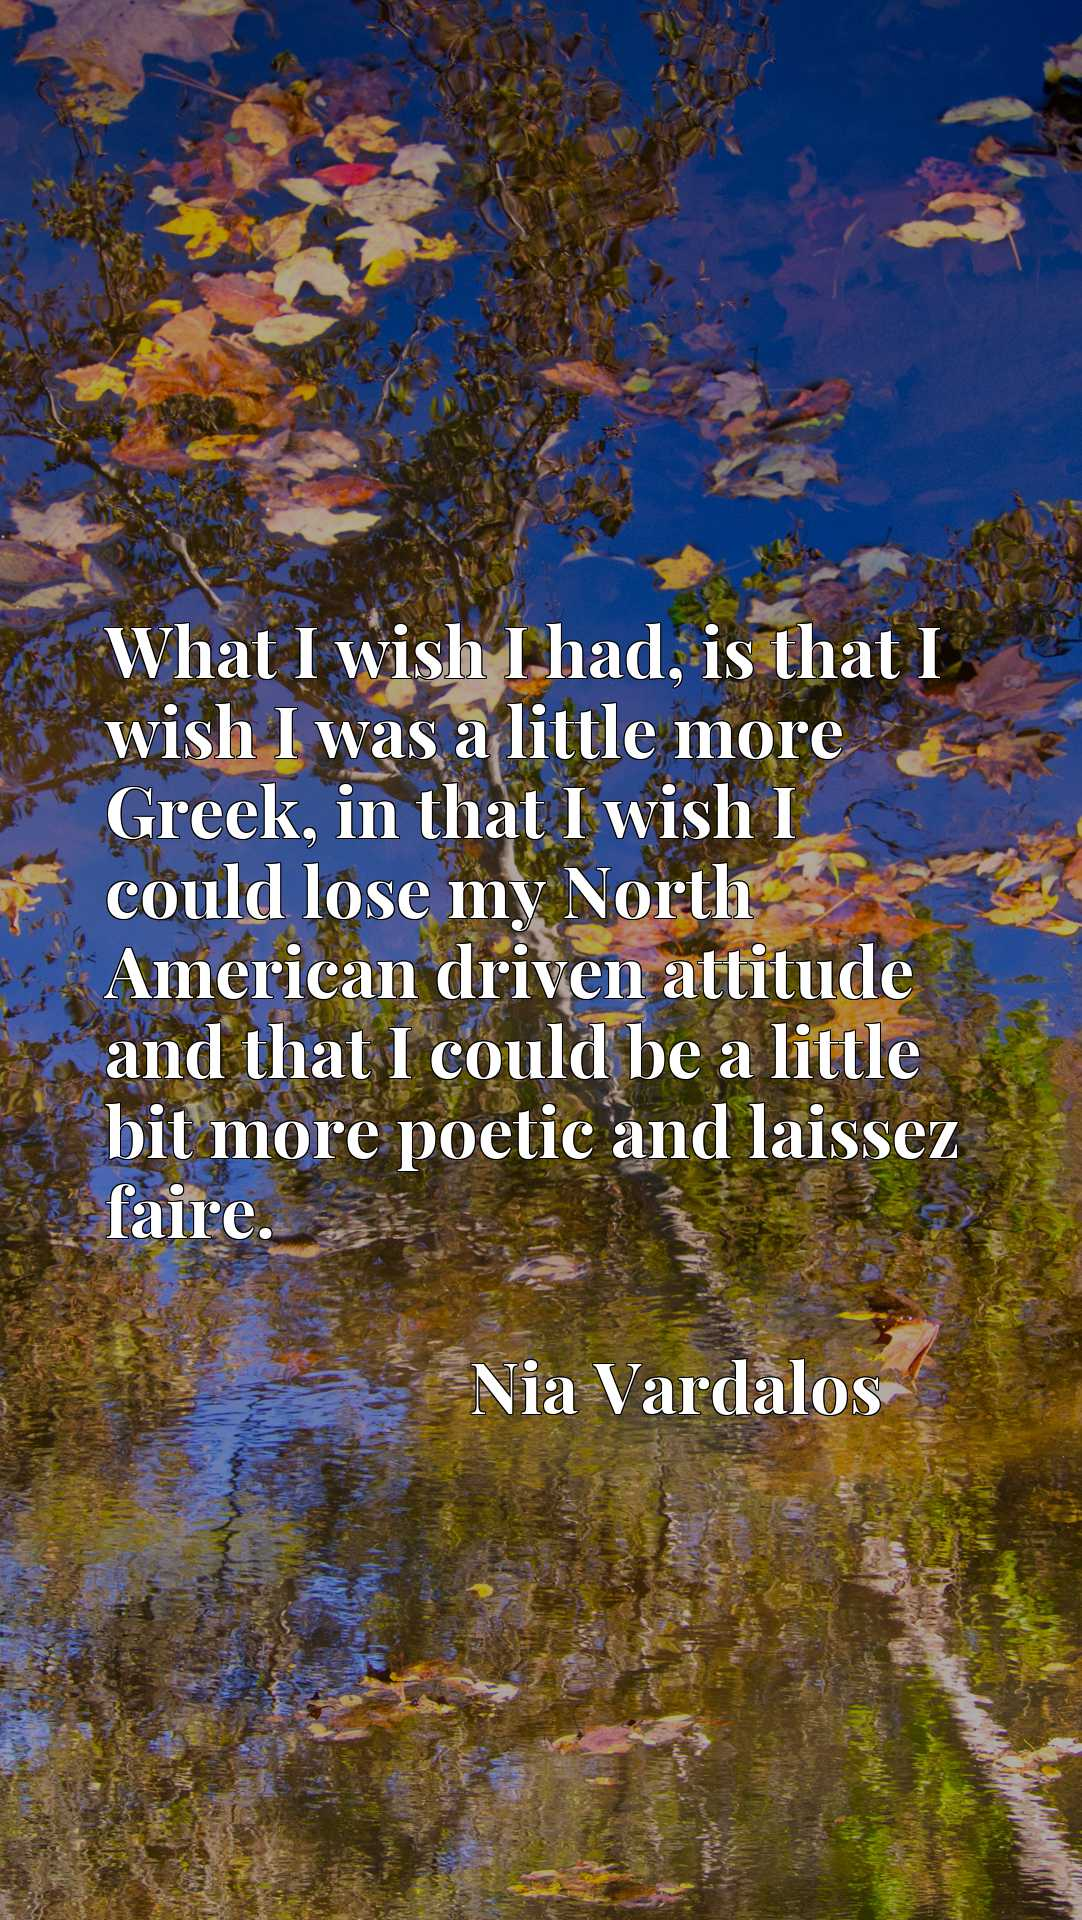 What I wish I had, is that I wish I was a little more Greek, in that I wish I could lose my North American driven attitude and that I could be a little bit more poetic and laissez faire.